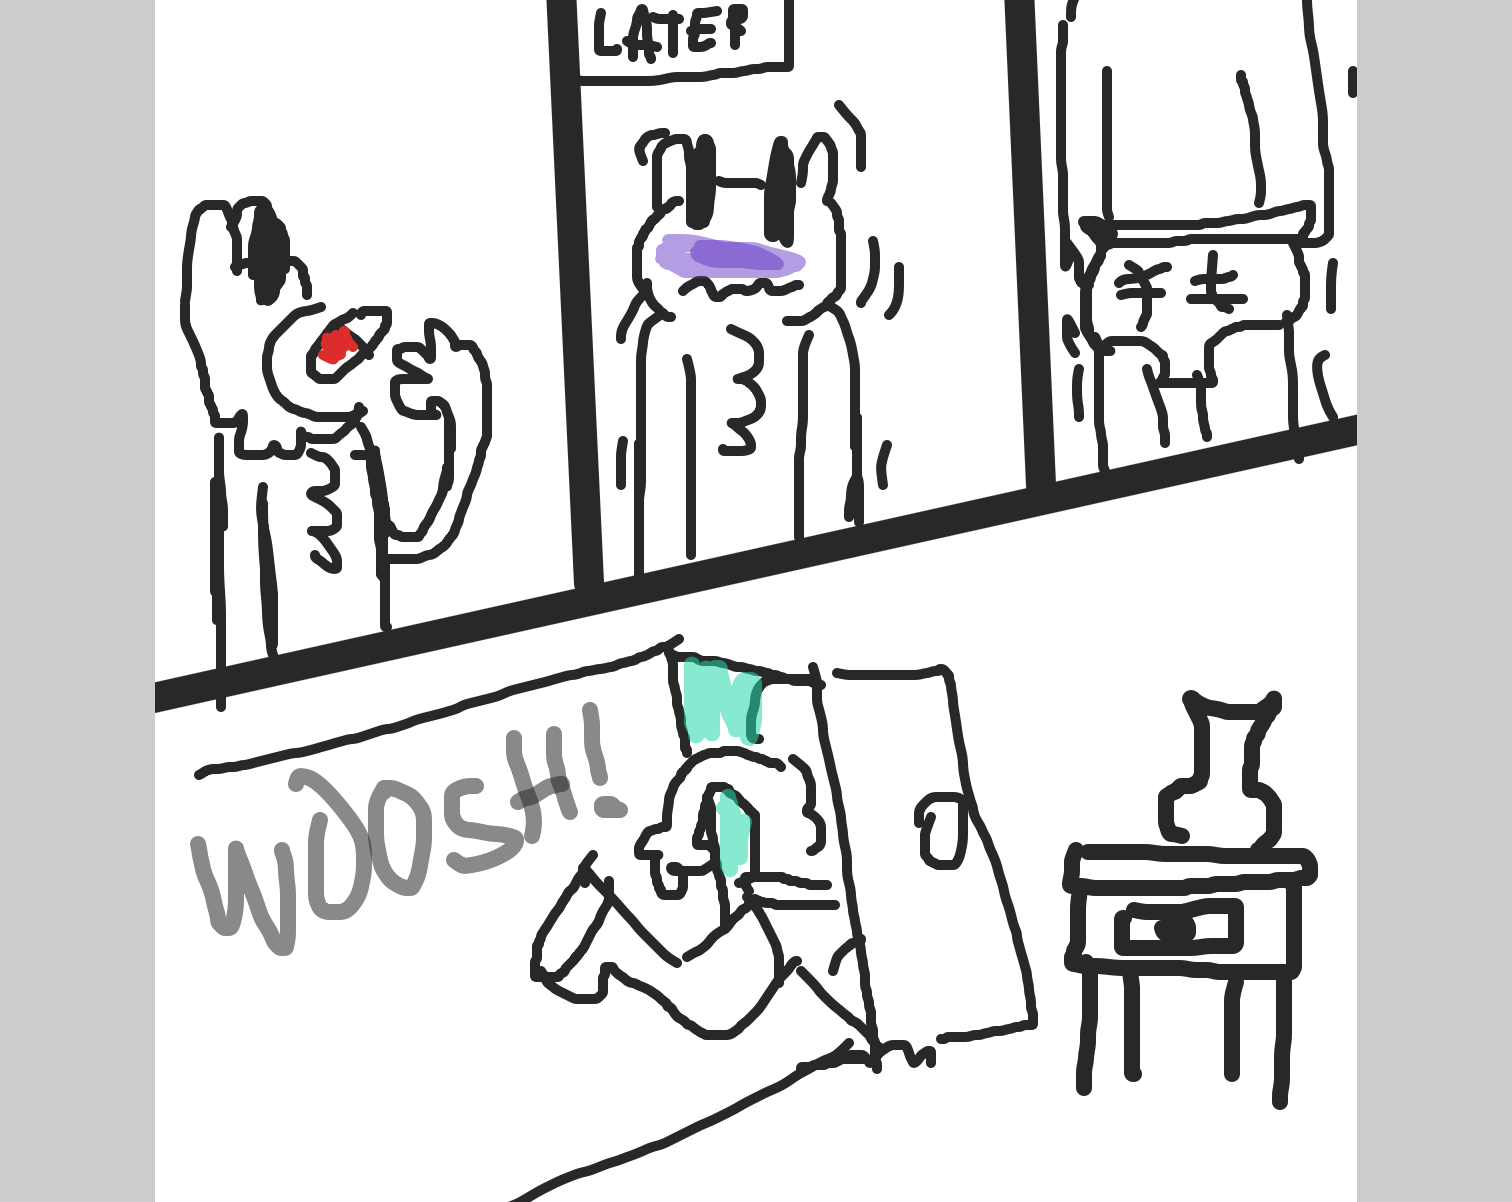 I G-Gotta get to t-the park! QUICK?! - Online Drawing Game Comic Strip Panel by LizardPie34